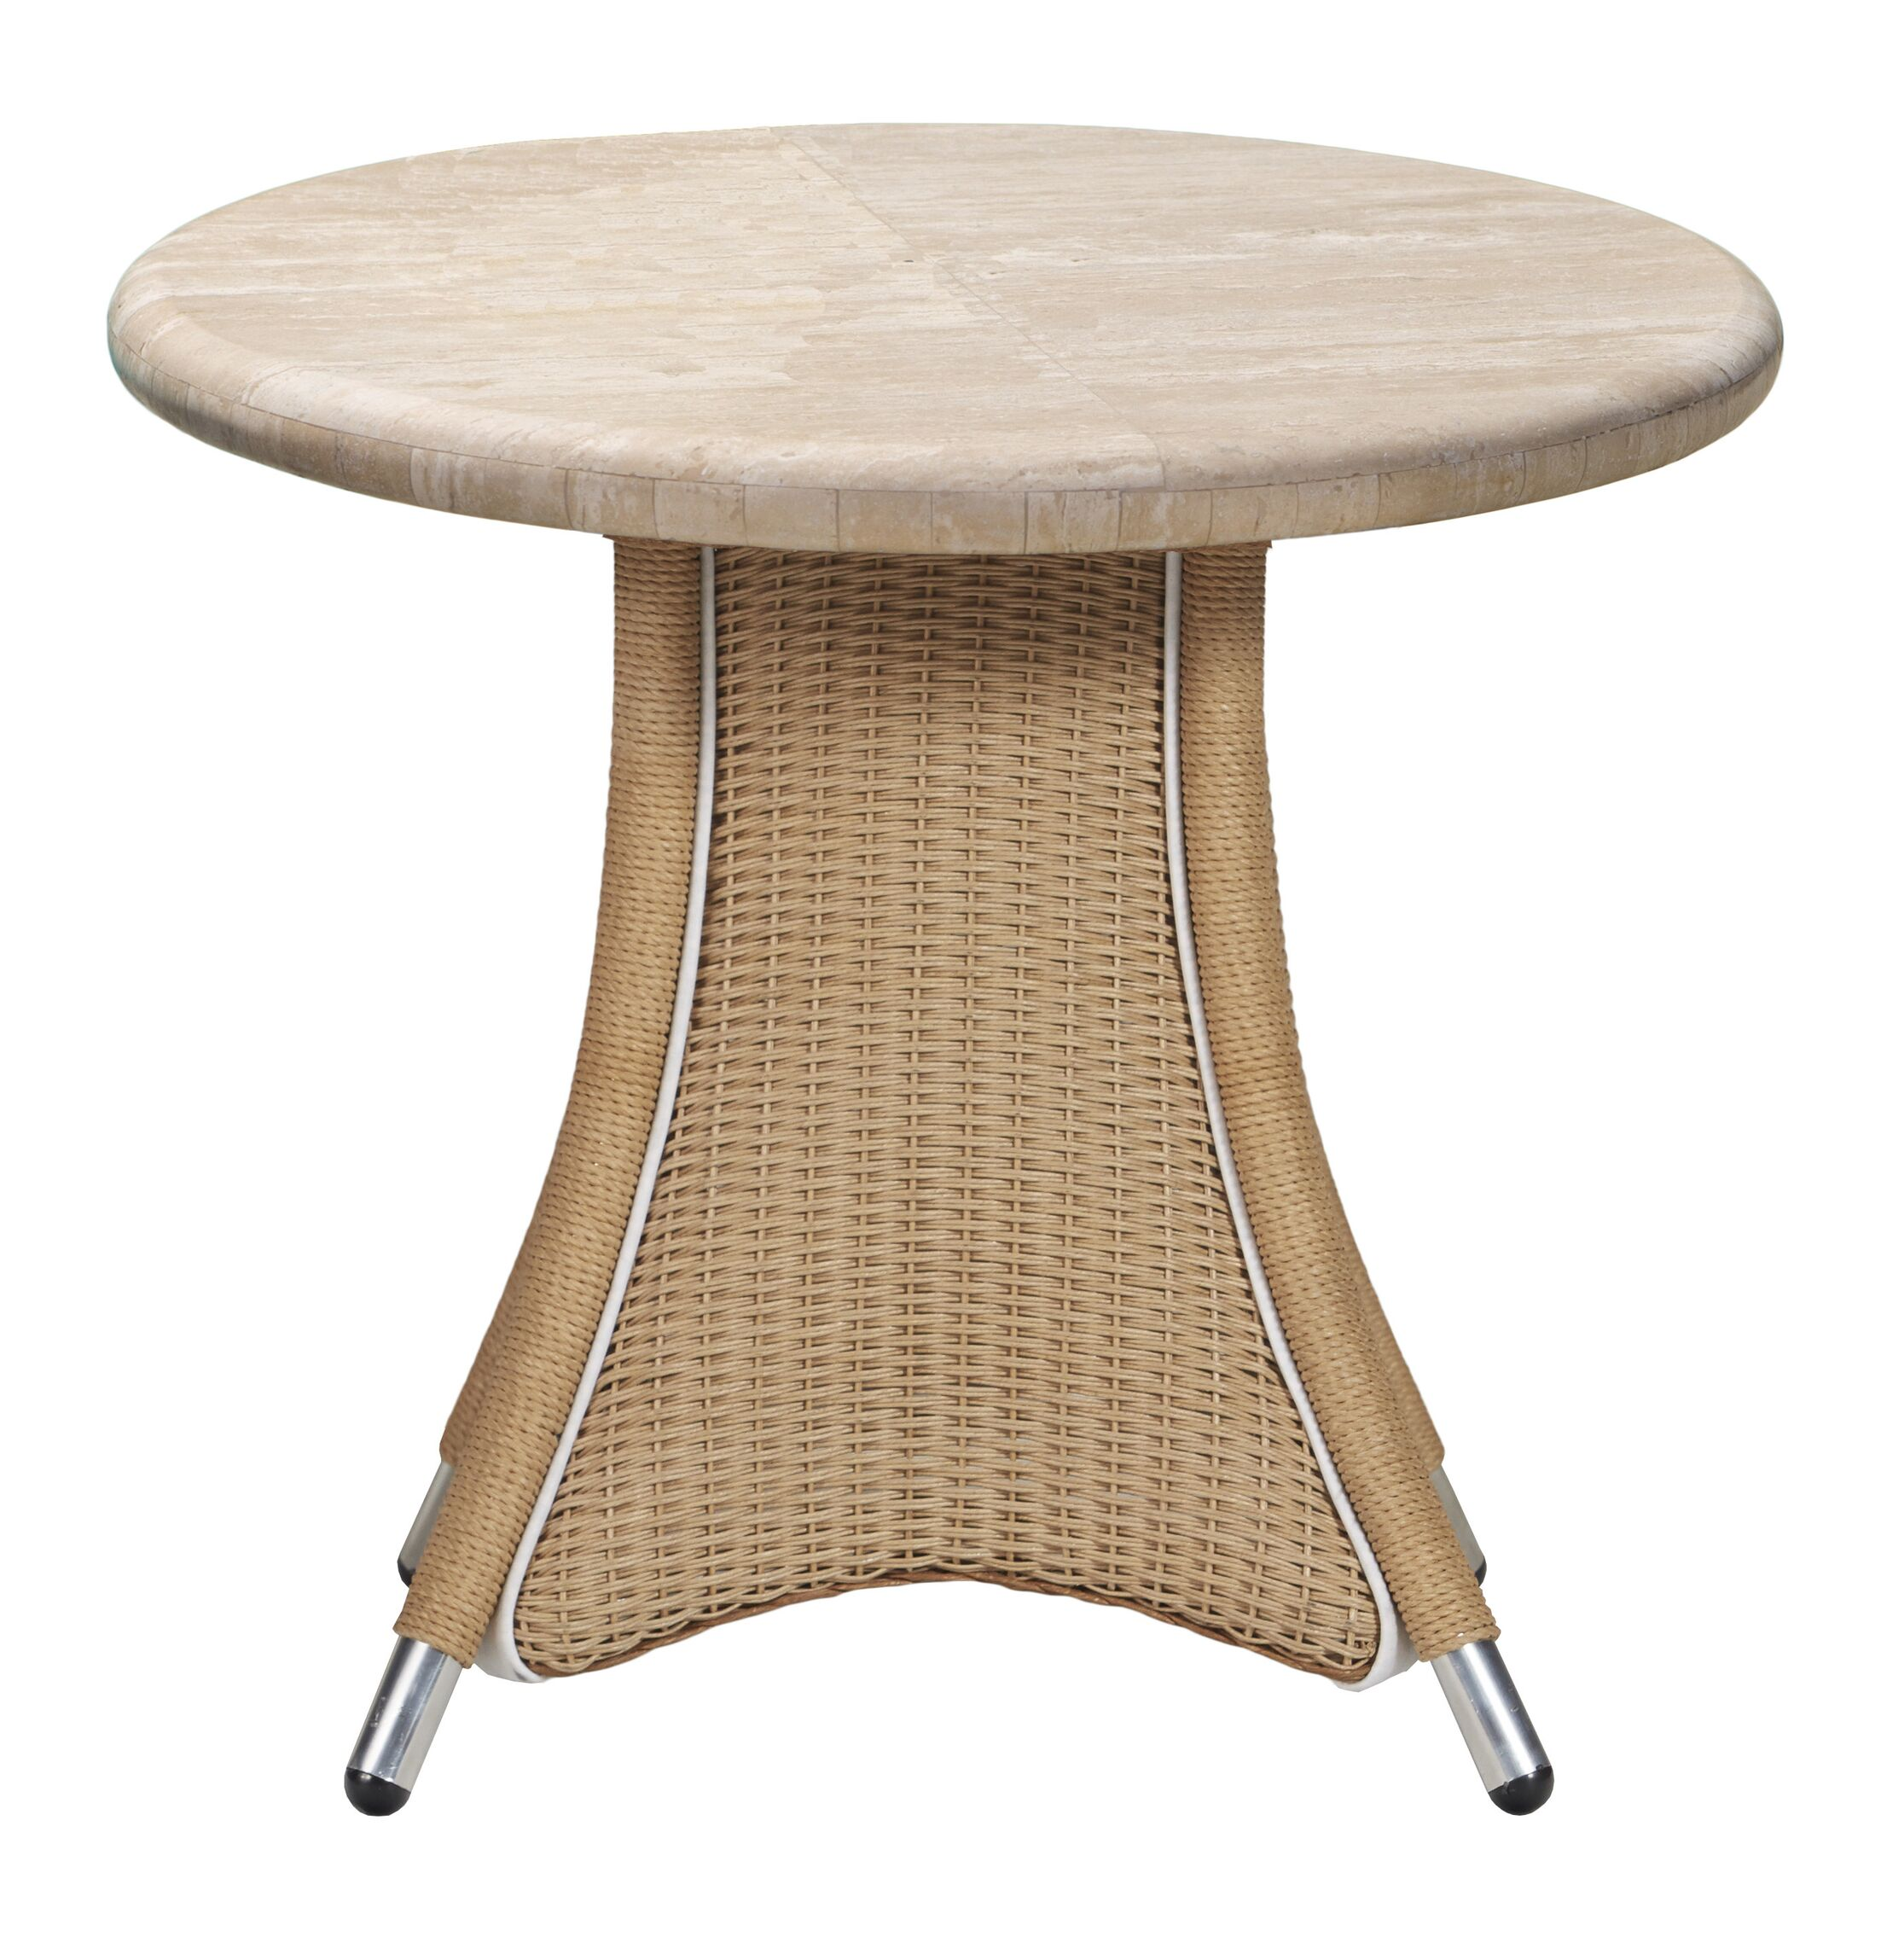 Generations Wicker Rattan Dining Table Finish: White